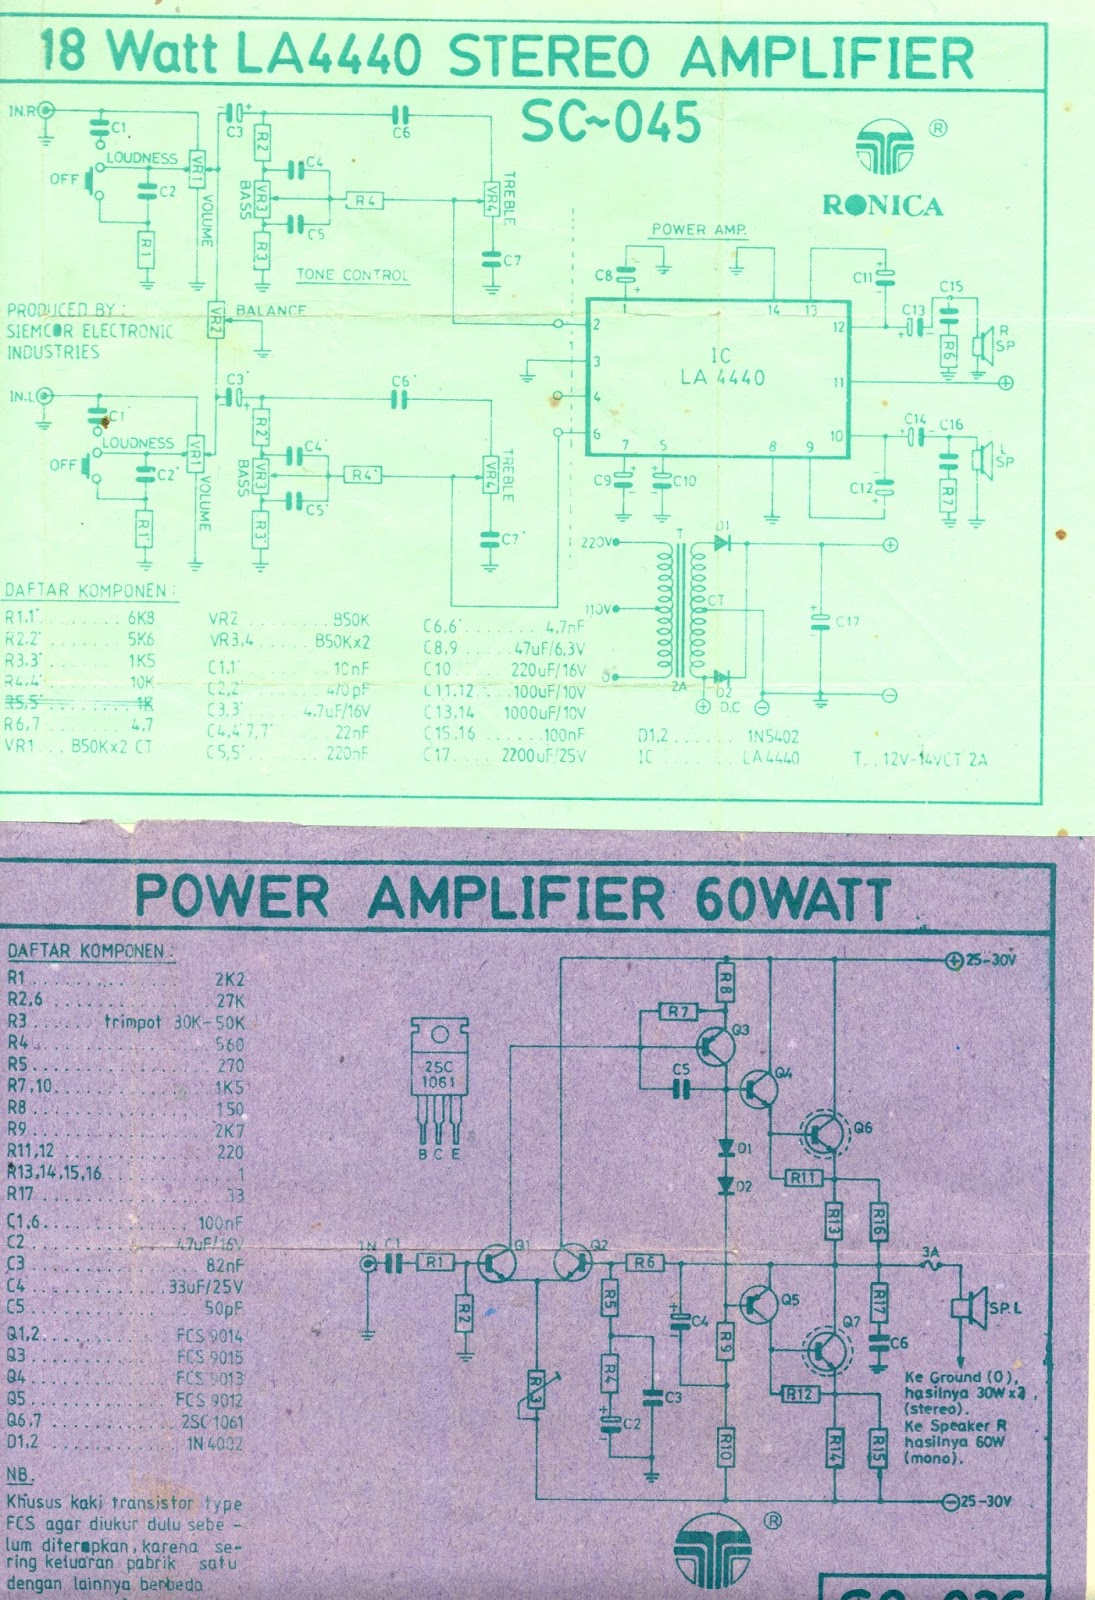 Class Ab Amplifier Skema My Colections T 60 Watts Audio Circuit Using Tda7296 First Ic Amp Project Based On La4440 And Push Pull Discrete D Tpa3116d2 Schematic